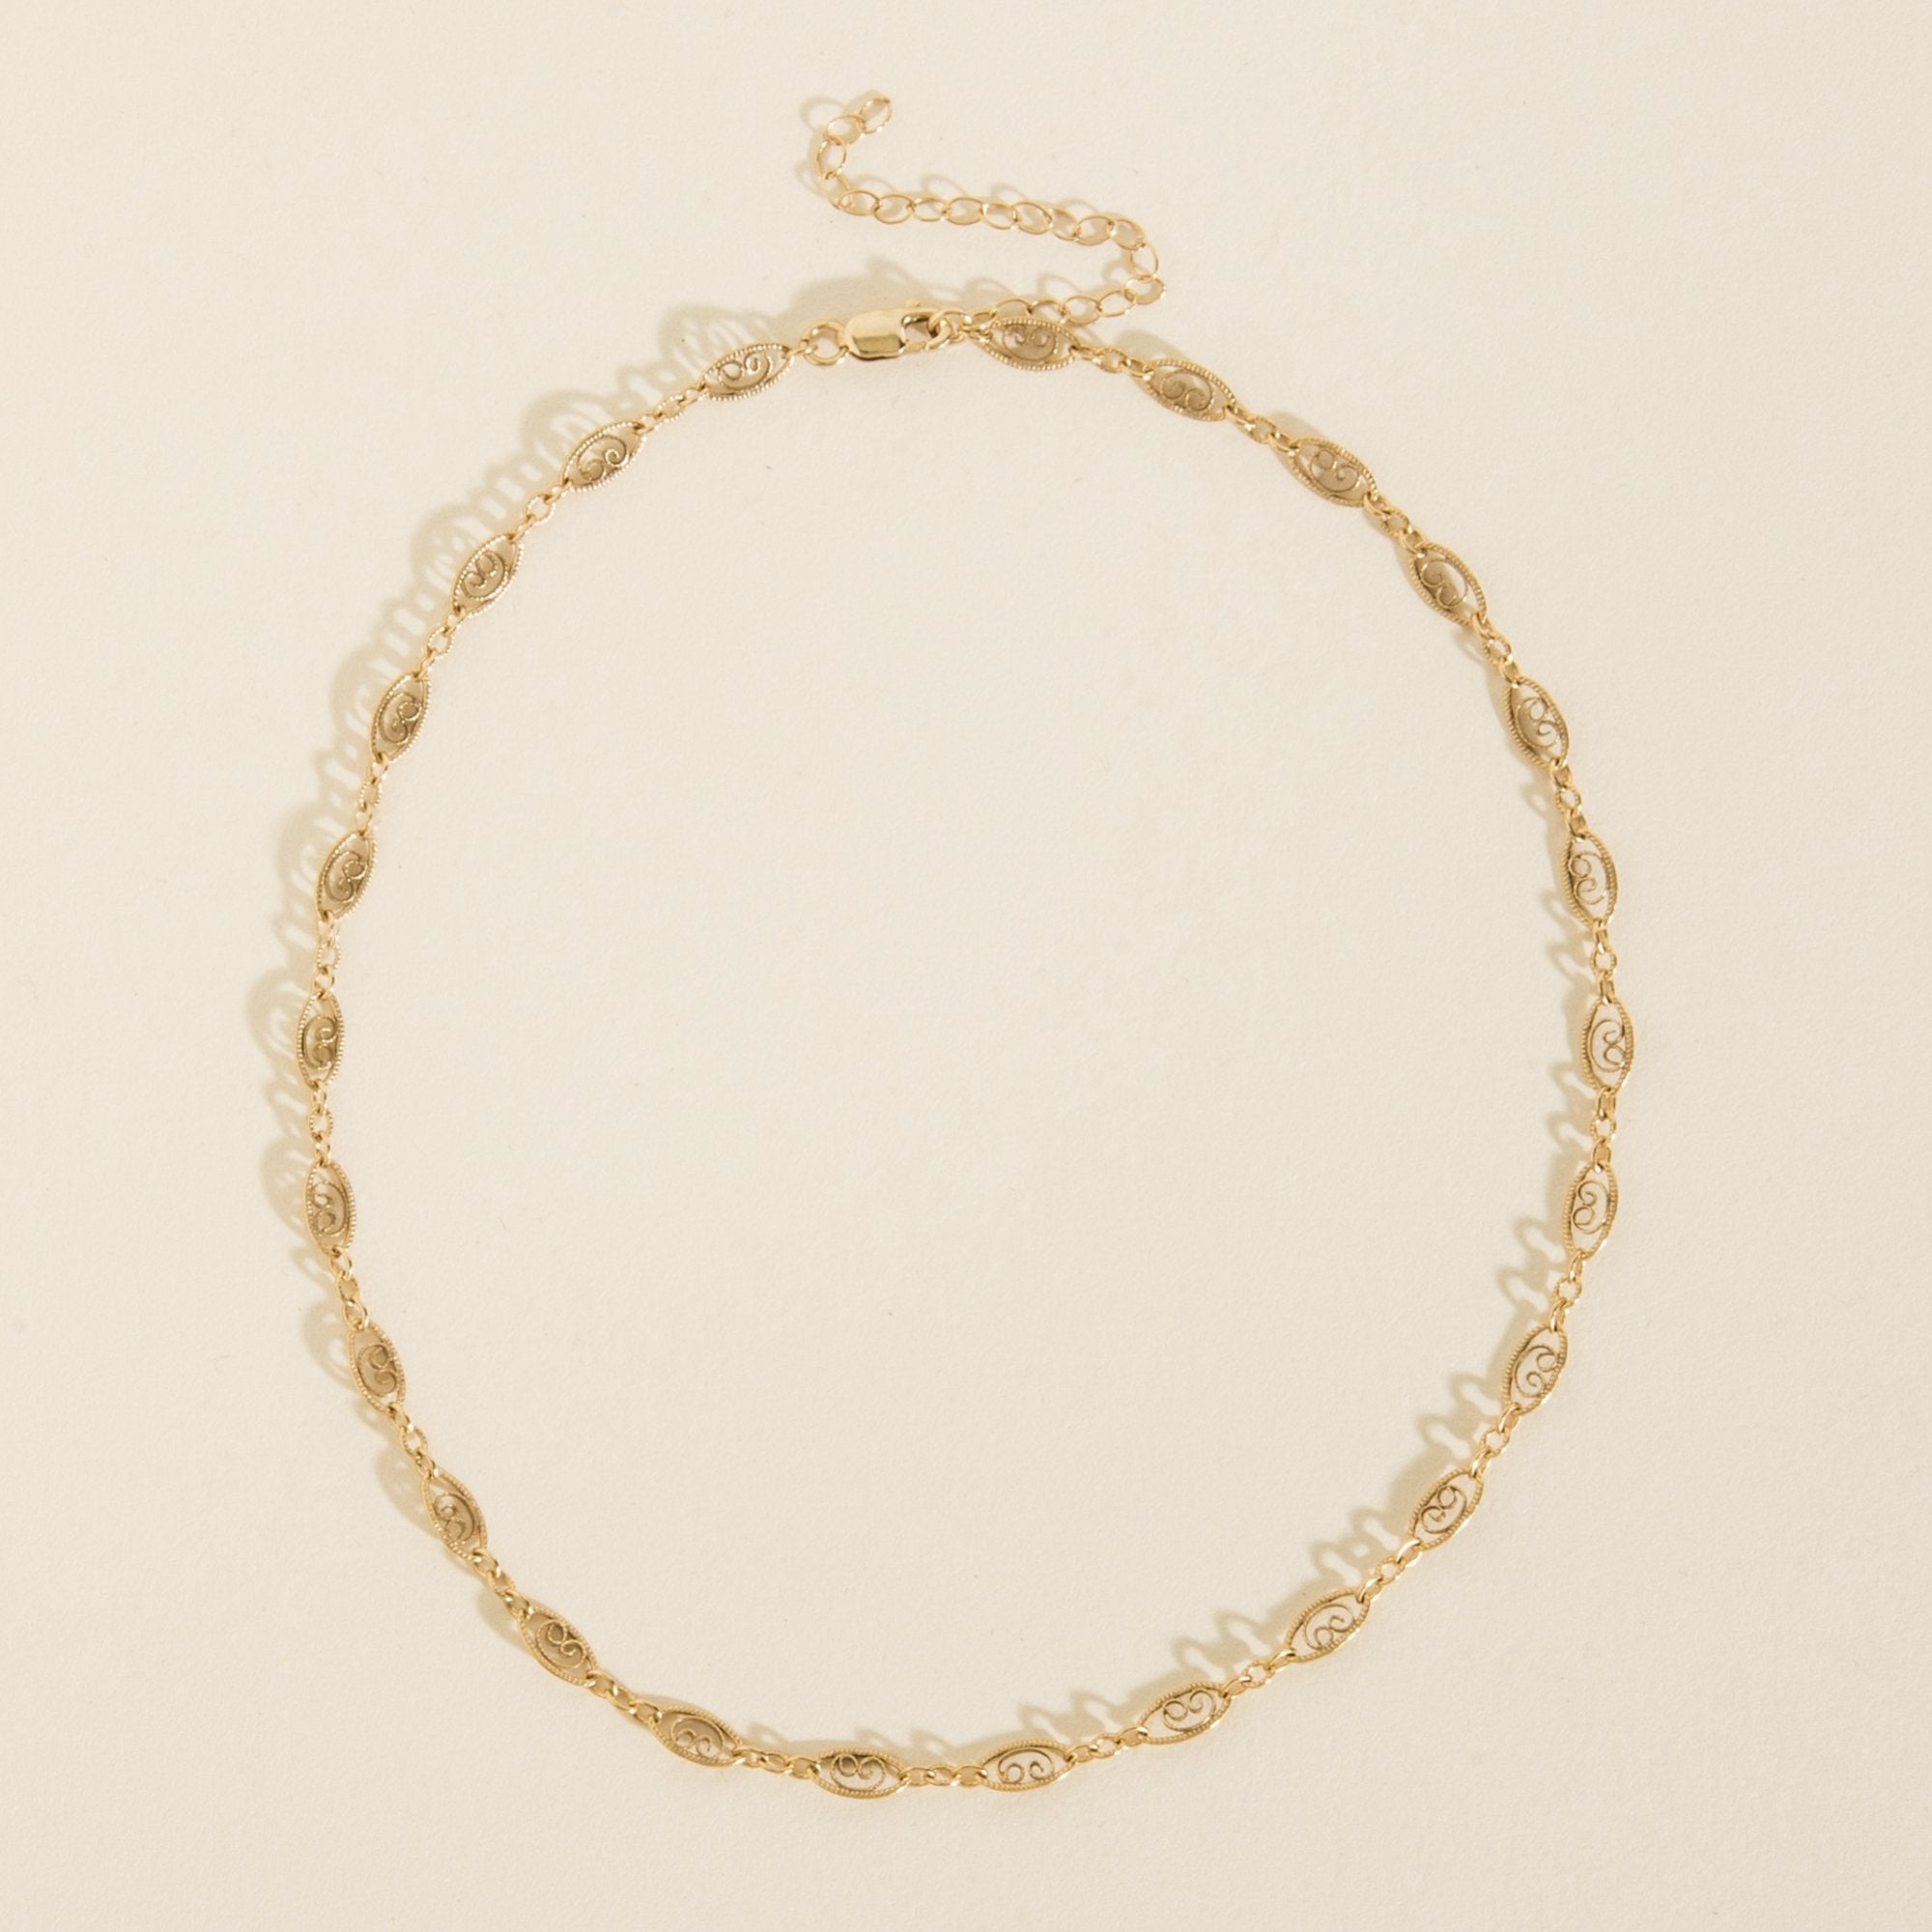 Haati Chai Chain Choker in Metallic Gold Q1w74v